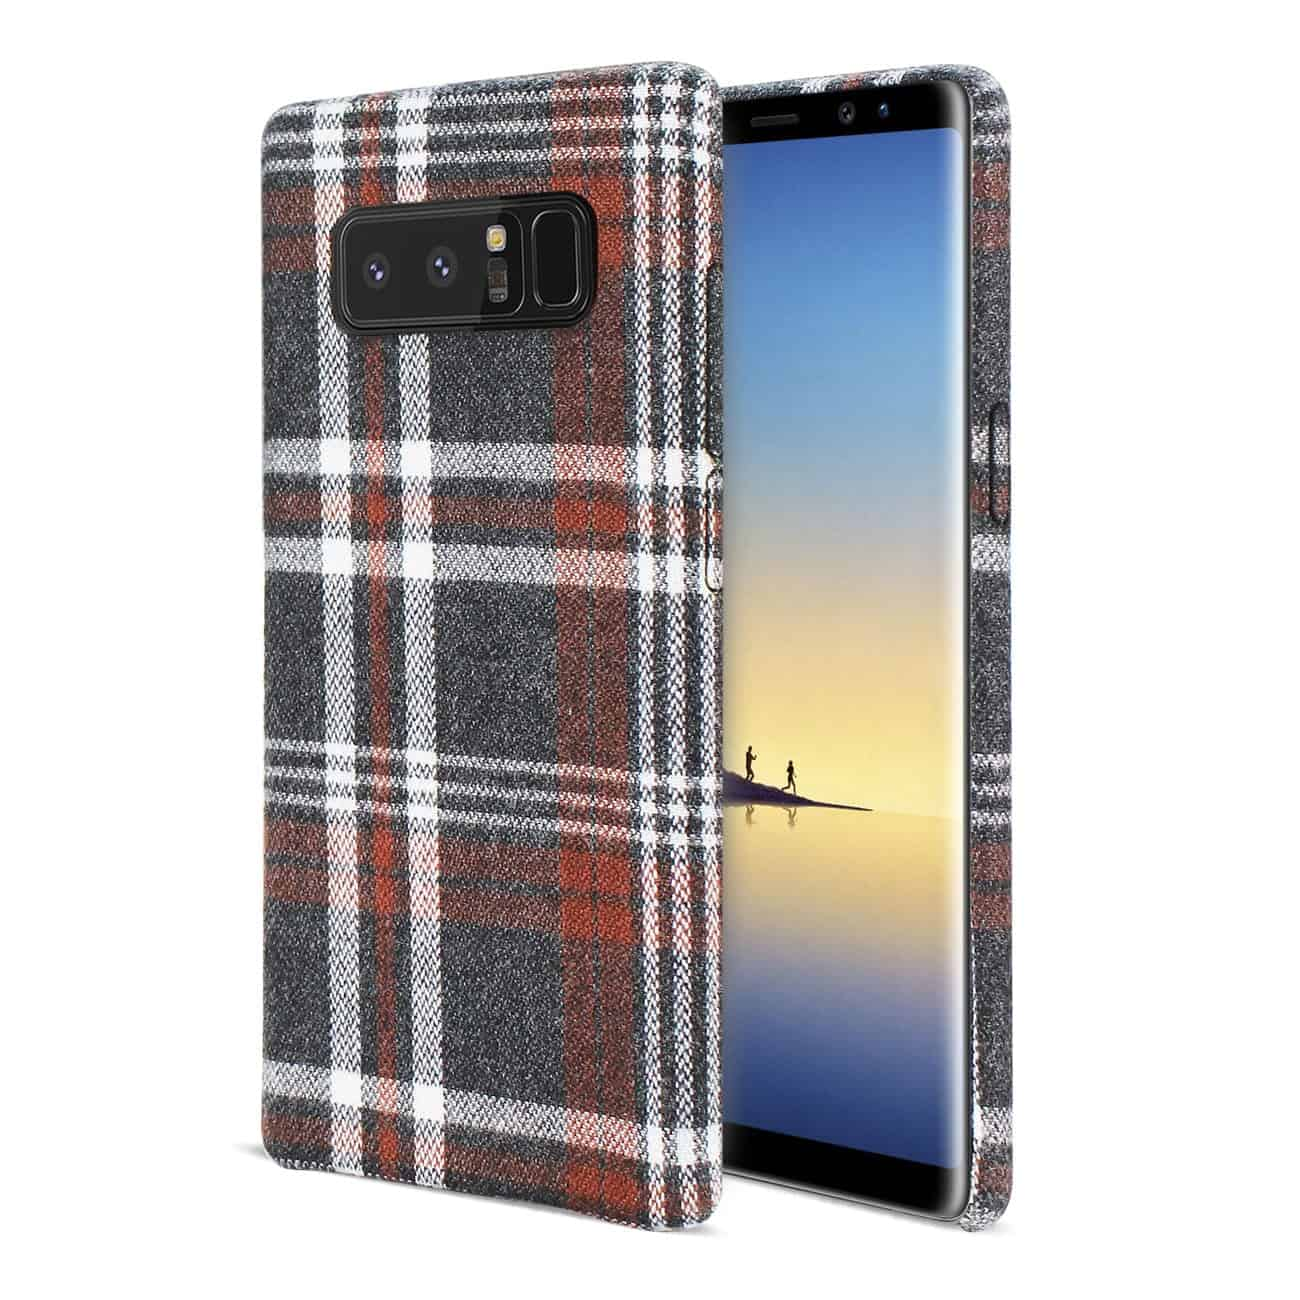 Samsung Galaxy Note 8 Checked Fabric In Brown